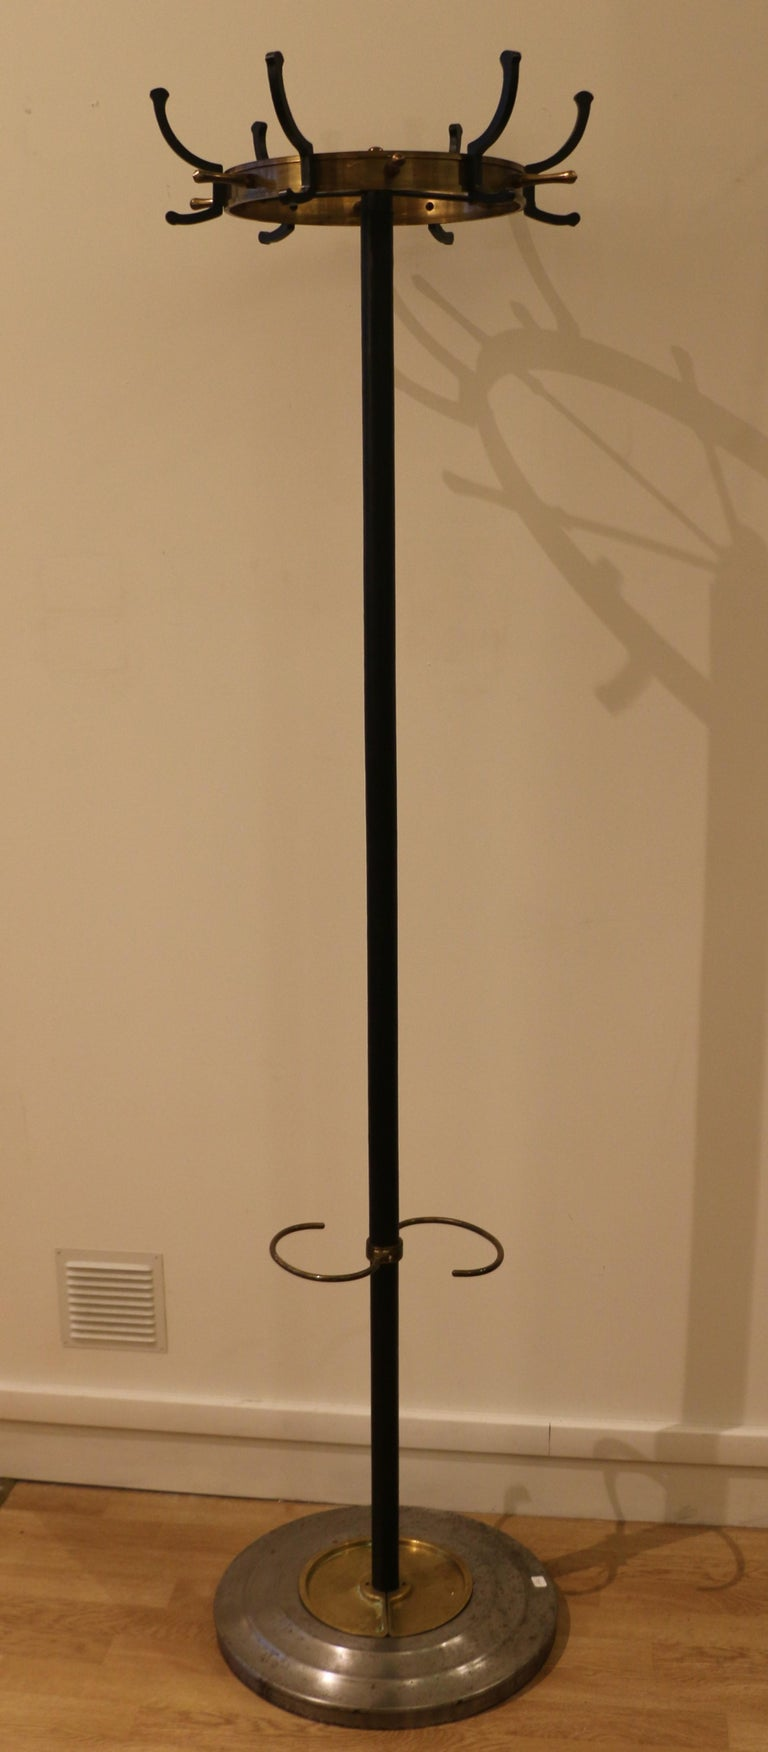 This furniture is typical of Jacques Adnet's work in the early 1950s. This coat stand allows to suspend up to 18 garments. It is also an umbrella stand. The base is made of steel, with two removable brass plaques. The shaft is covered with leather